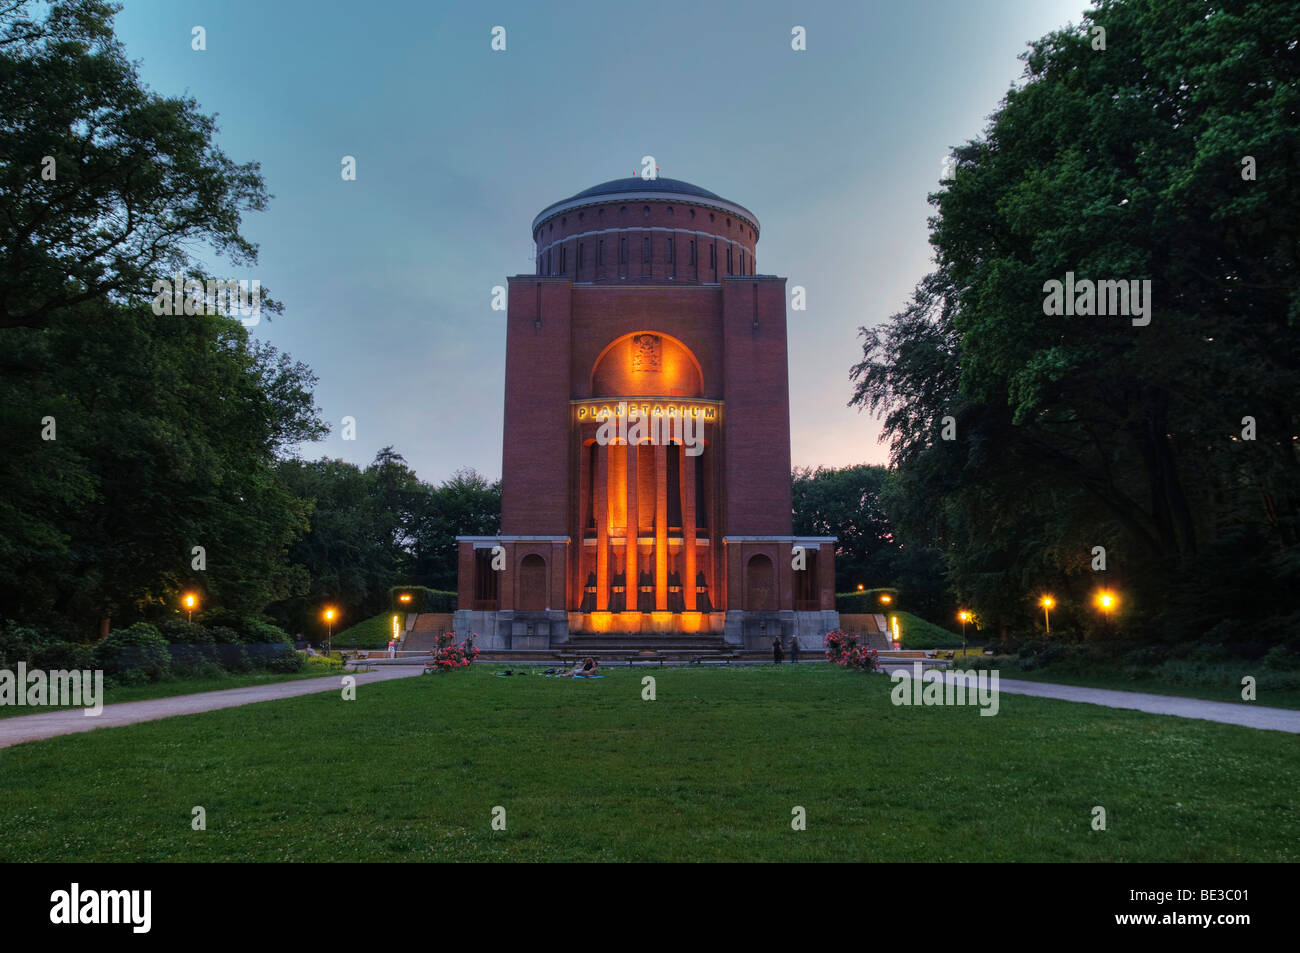 Hamburg Planetarium at dusk, Hamburg Stadtpark, public park, Hamburg, Germany, Europe Stock Photo